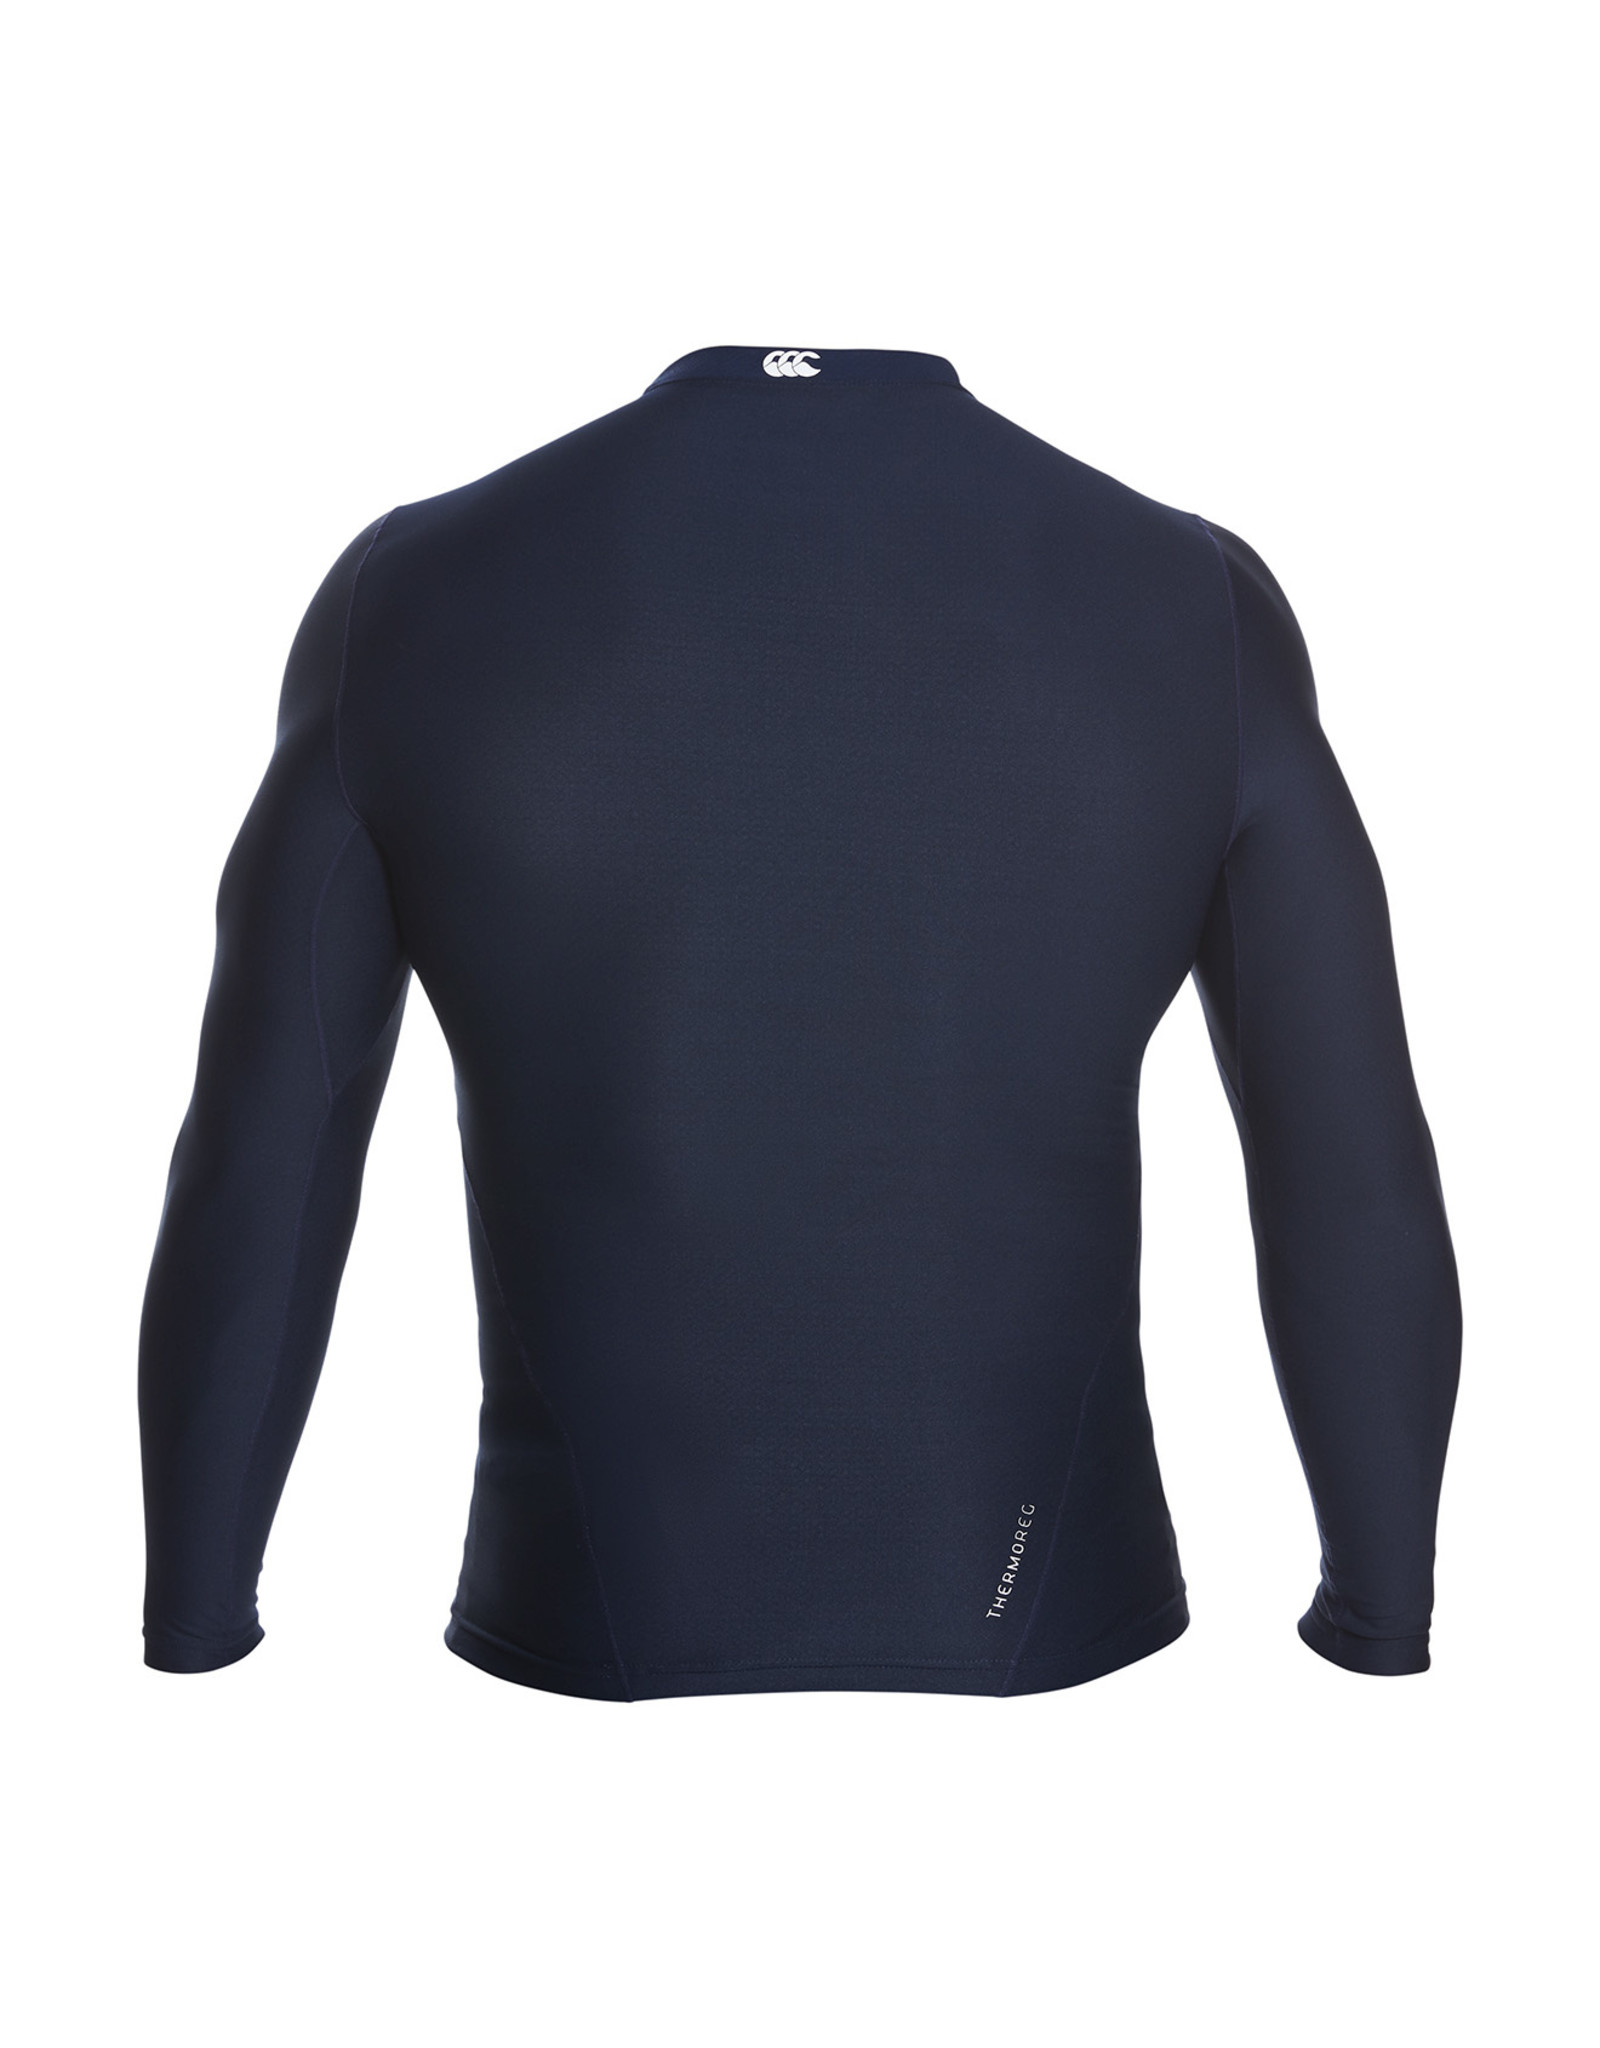 Canterburry Thermoreg Long Sleeve Top Sr